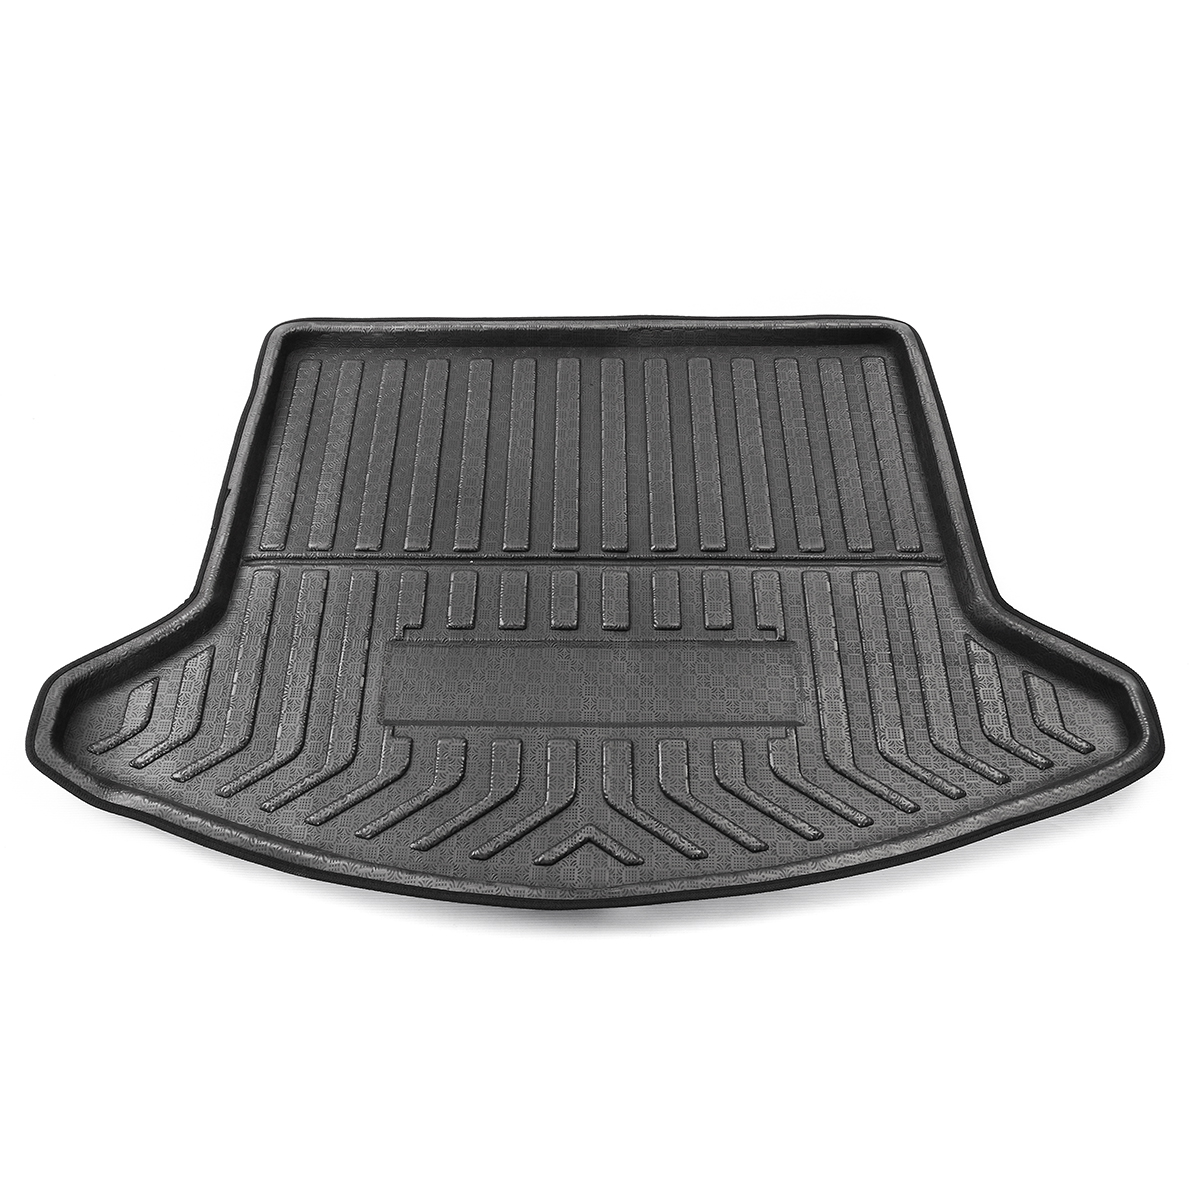 pe car rear boot trunk cargo dent floor protector mat tray for mazda cx 5 cx5 mk2 17 18. Black Bedroom Furniture Sets. Home Design Ideas